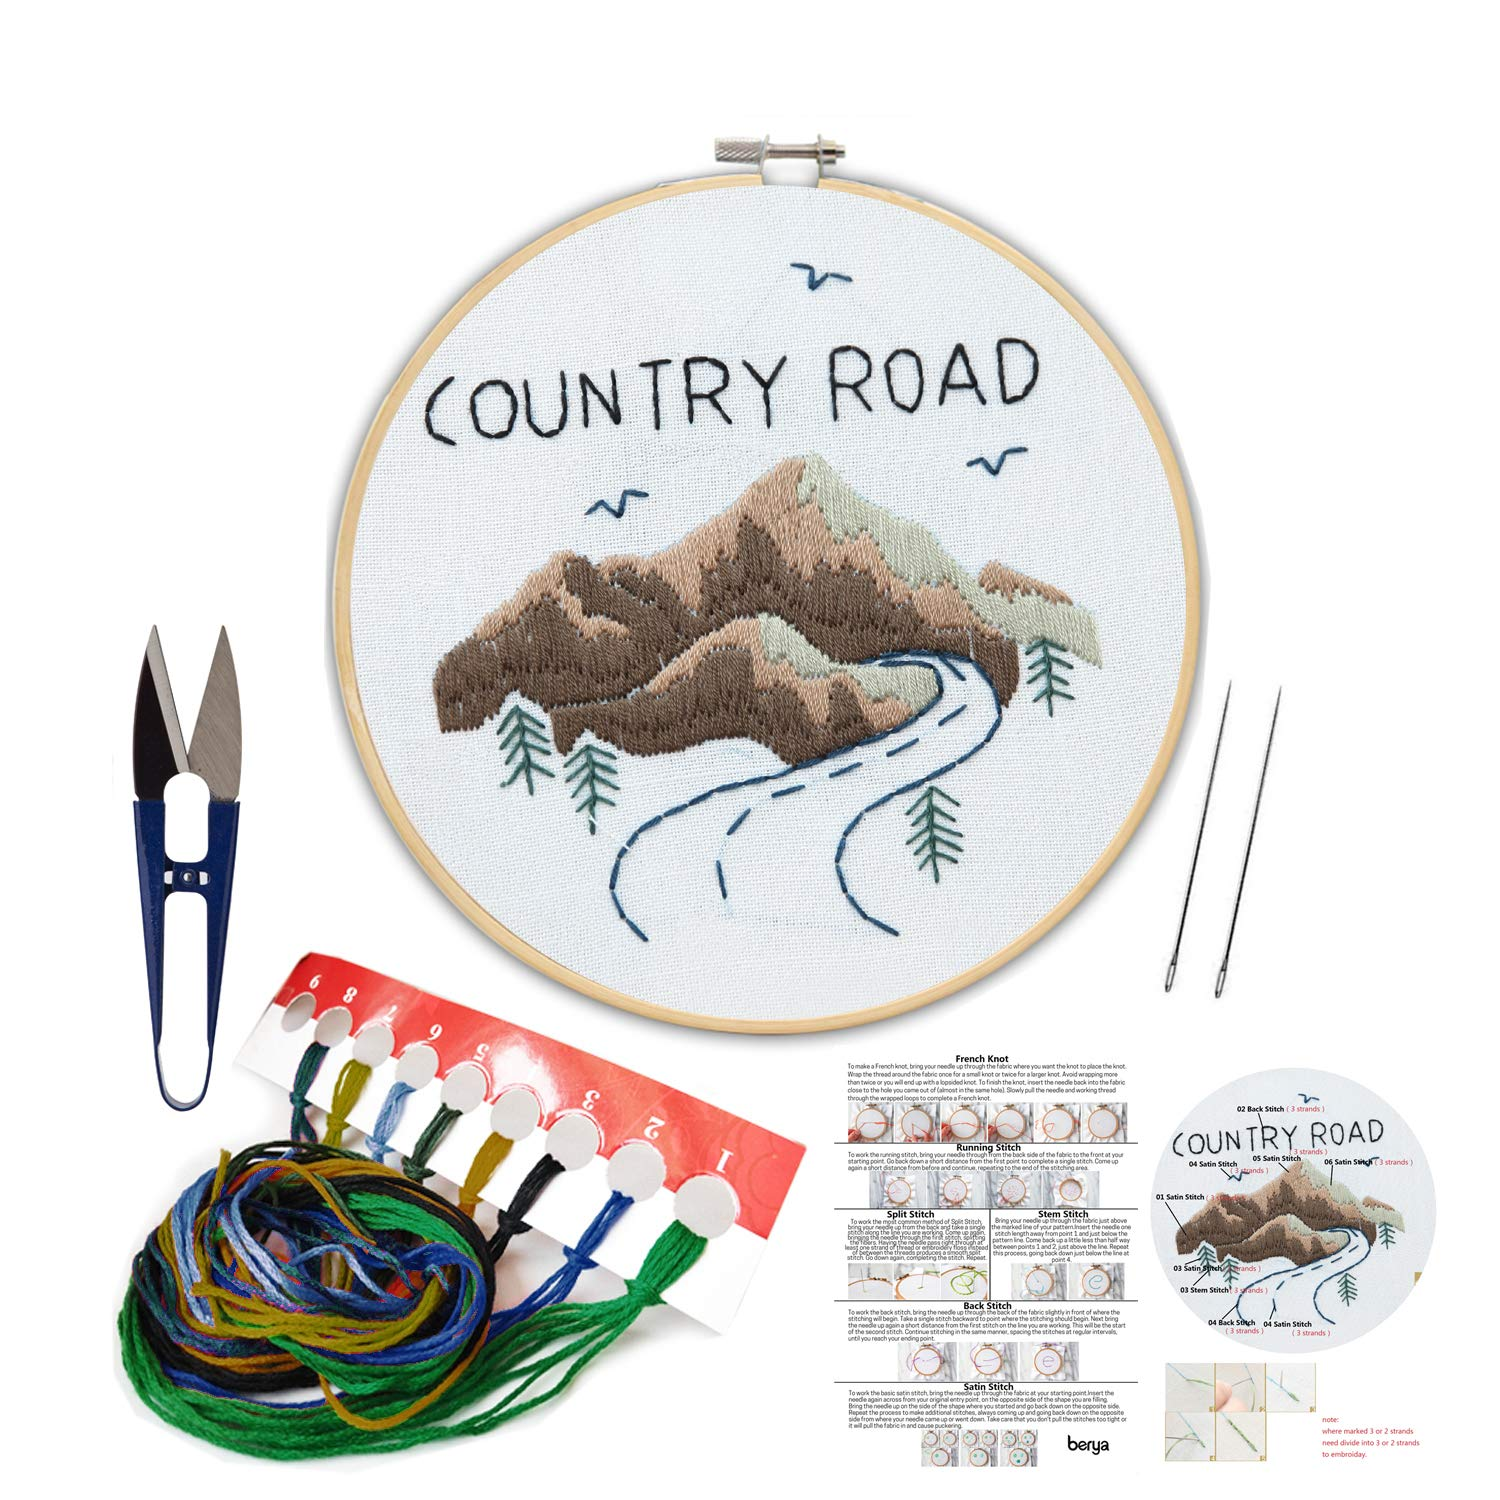 Embroidery Kit Including Embroidery Hoop,Color Threads and Embroidery Scissors for Beginners-Handmade Needlepoint Kits for Adults Kids(Mountain)